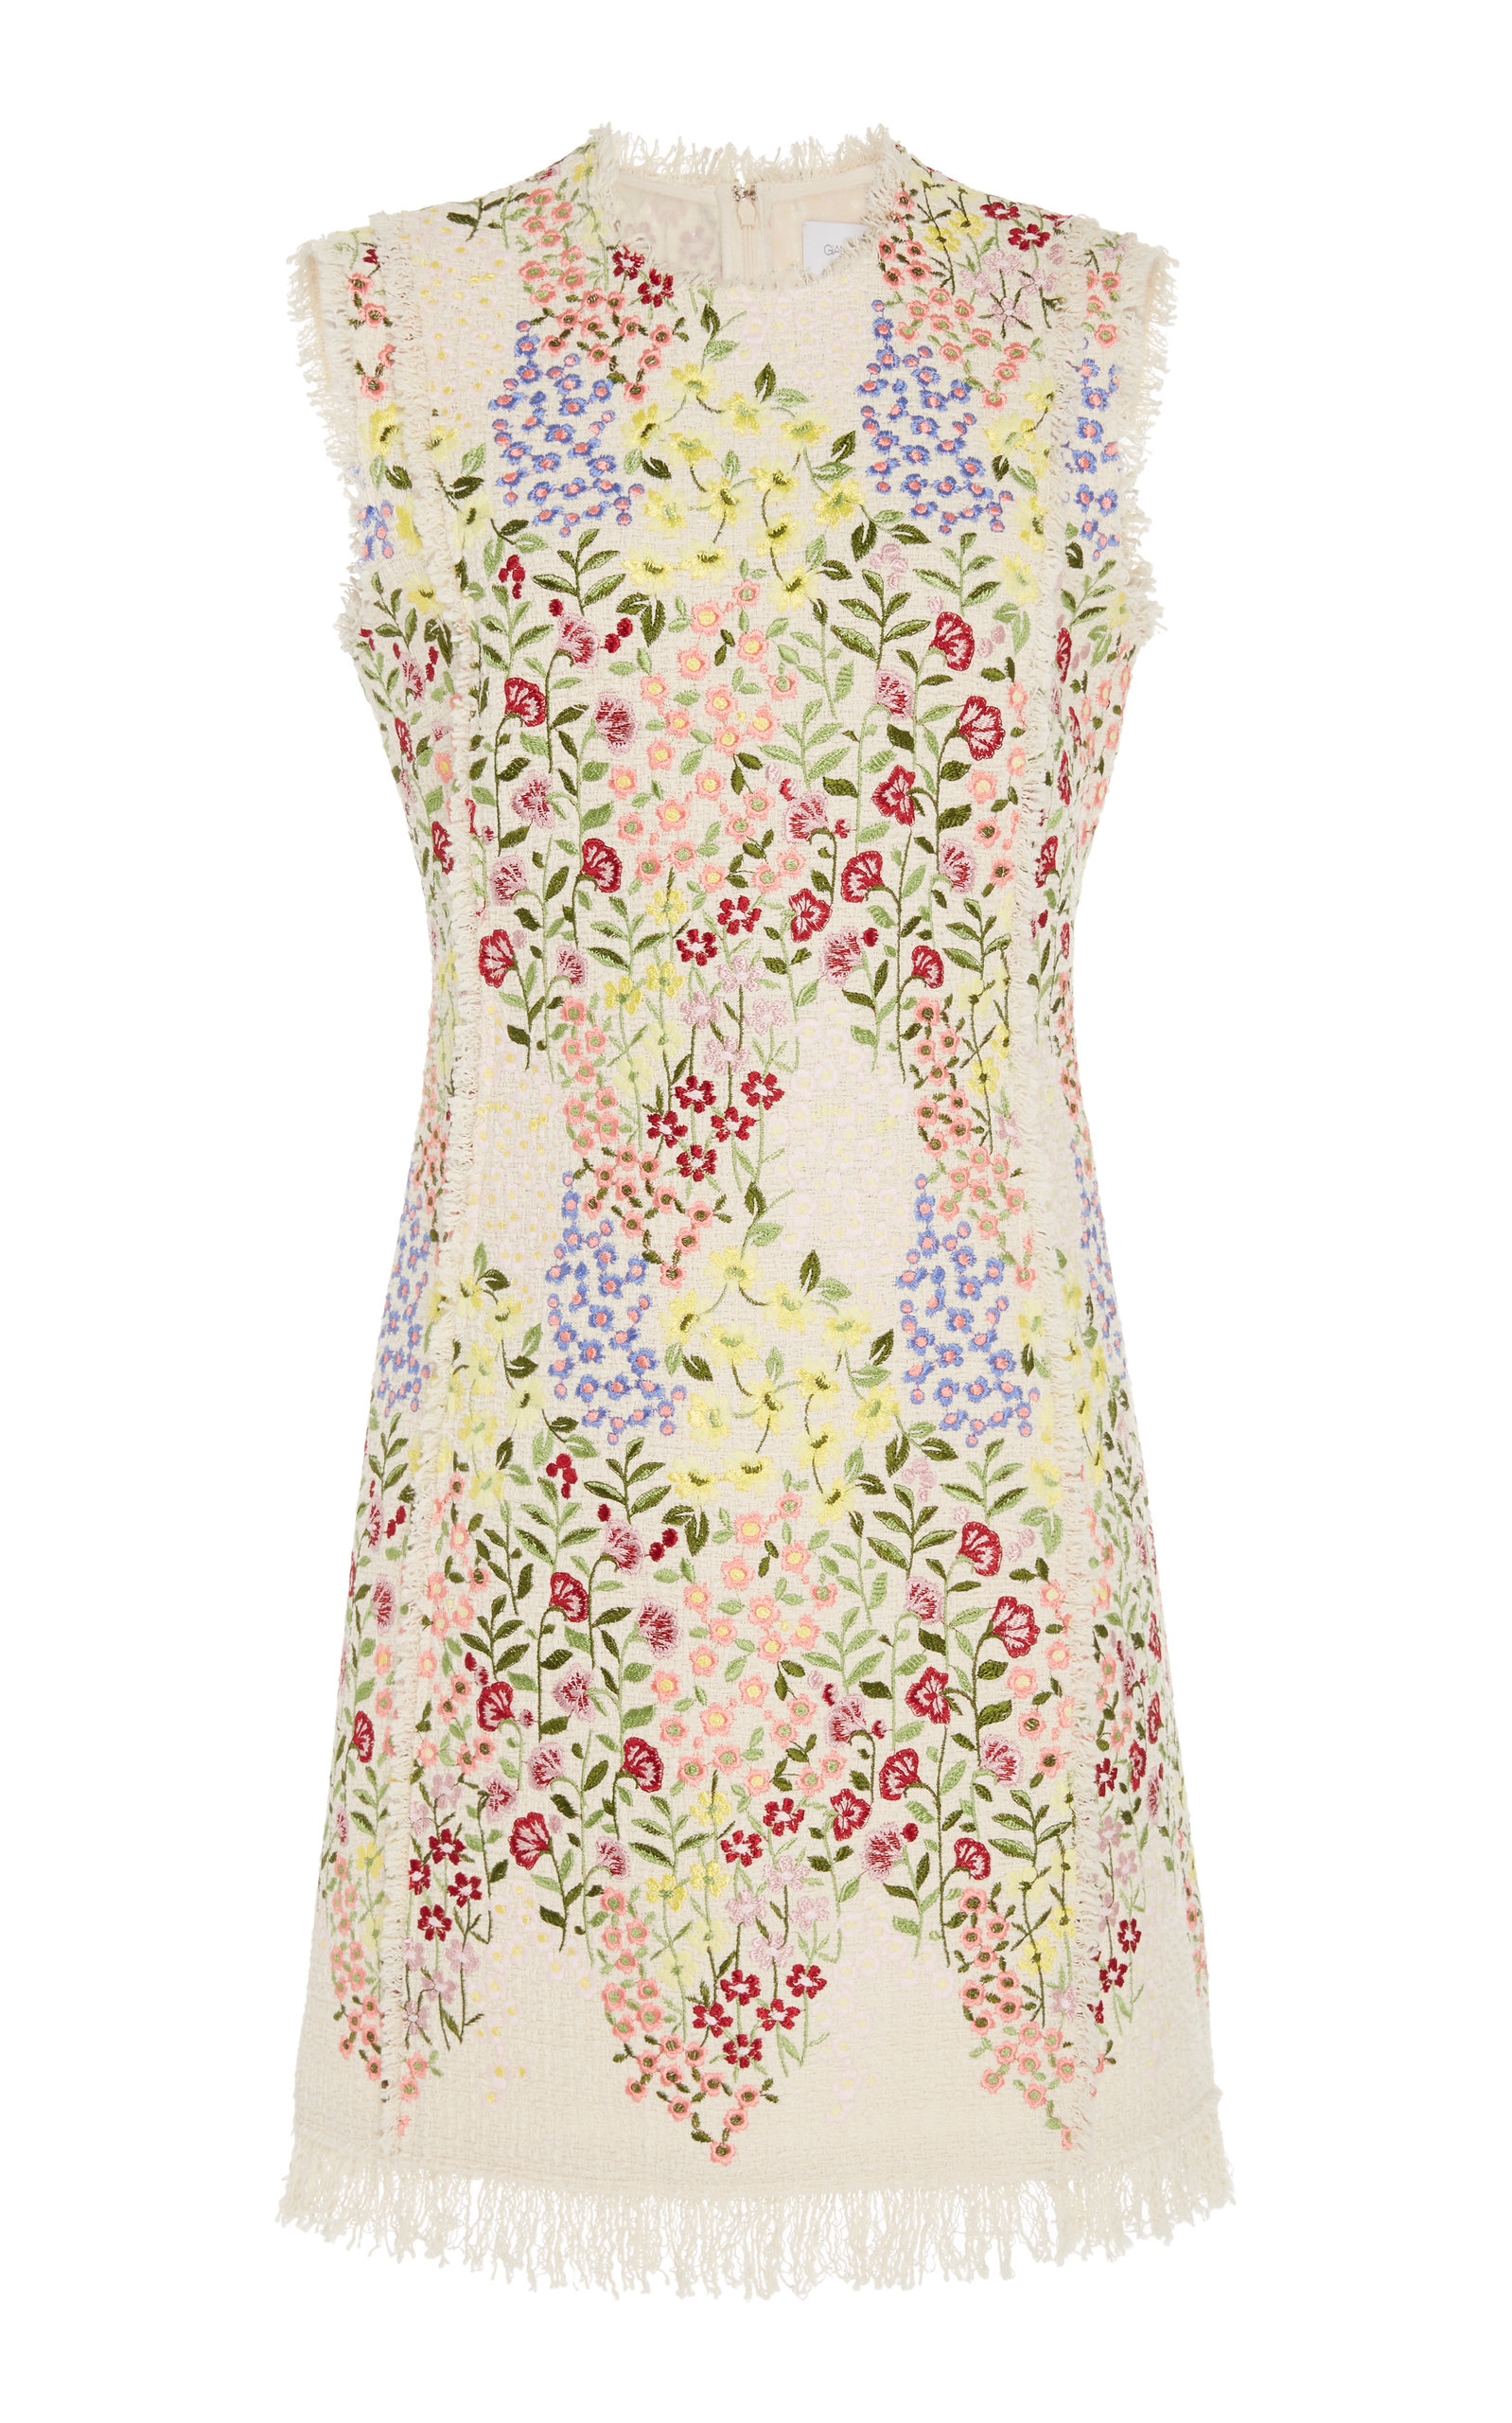 Buy Giambattista Valli Frayed Floral Jacquard Mini Dress online, shop Giambattista Valli at the best price